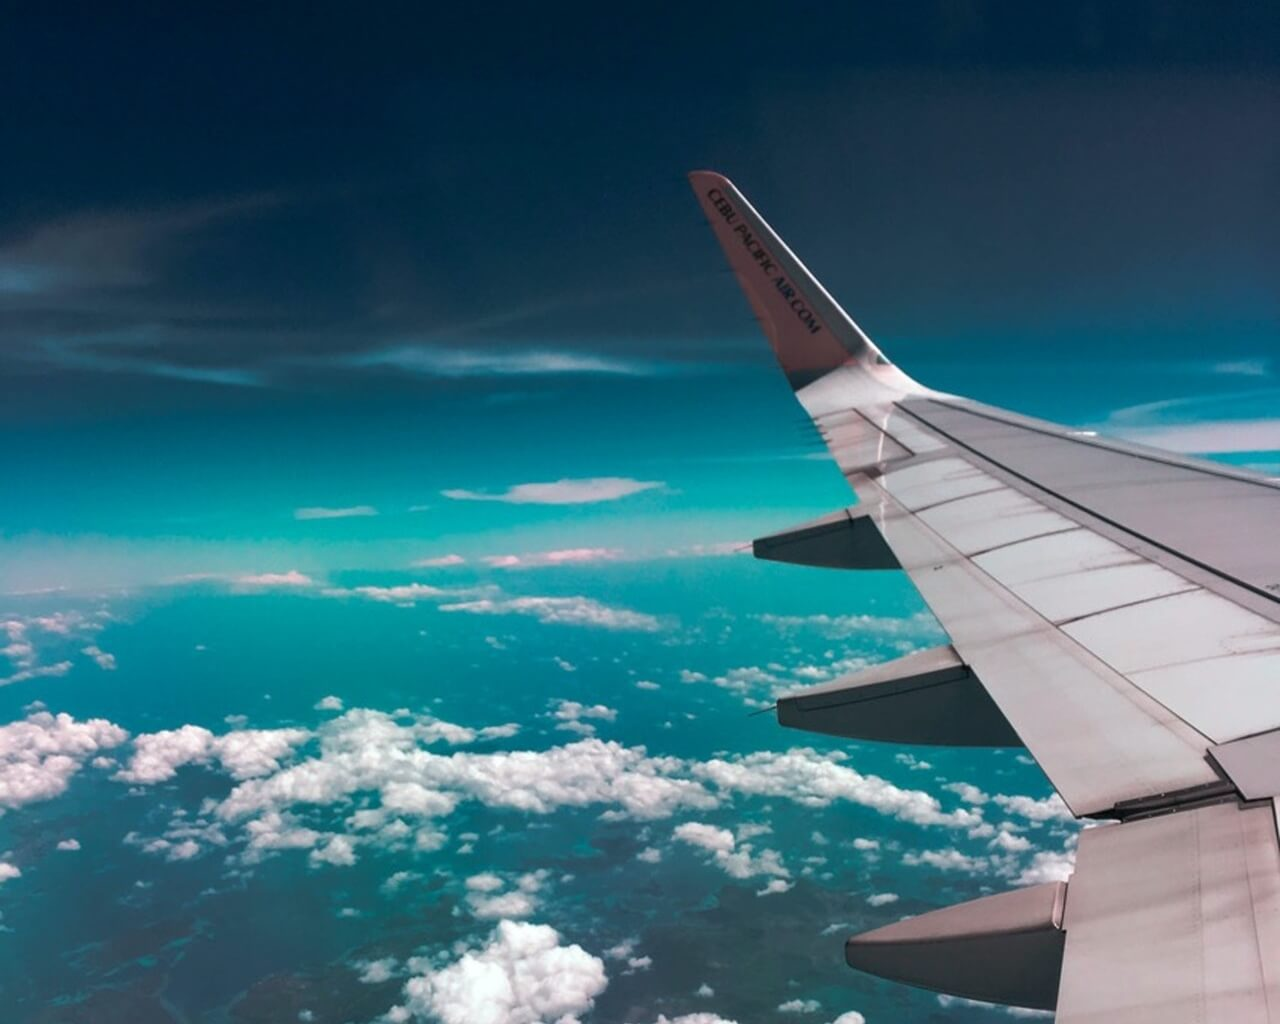 A picture of a plane wing high in the sky above a blue ocean.